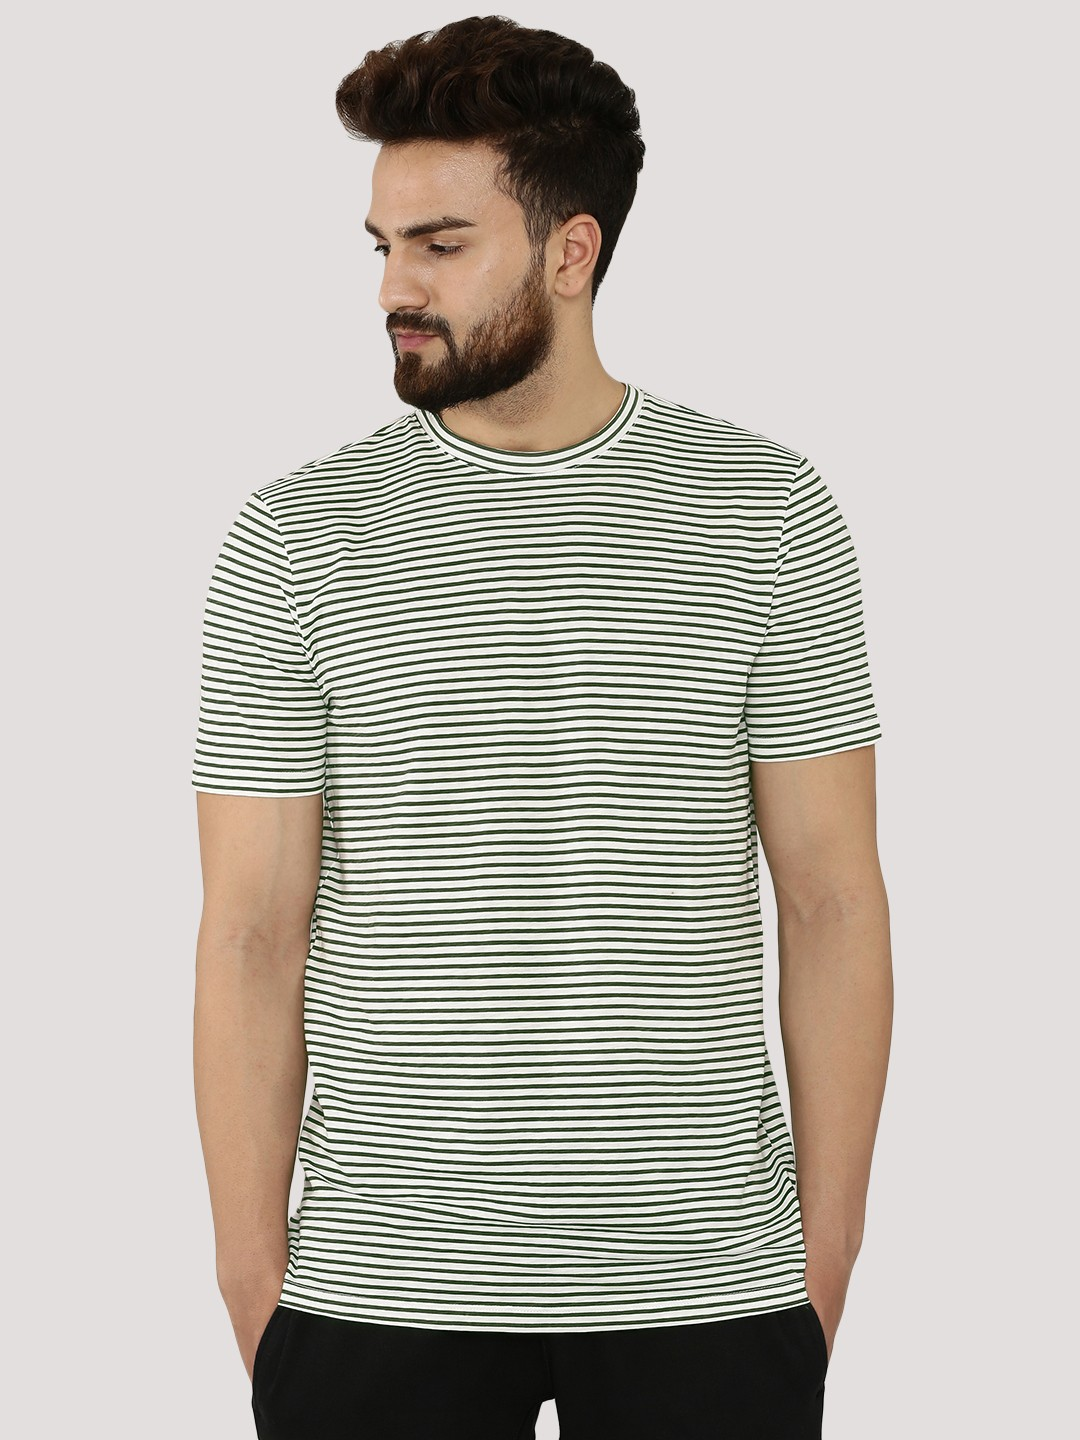 Buy NEW LOOK Striped T-shirt For Men - Men's Multi T-shirts Online ...